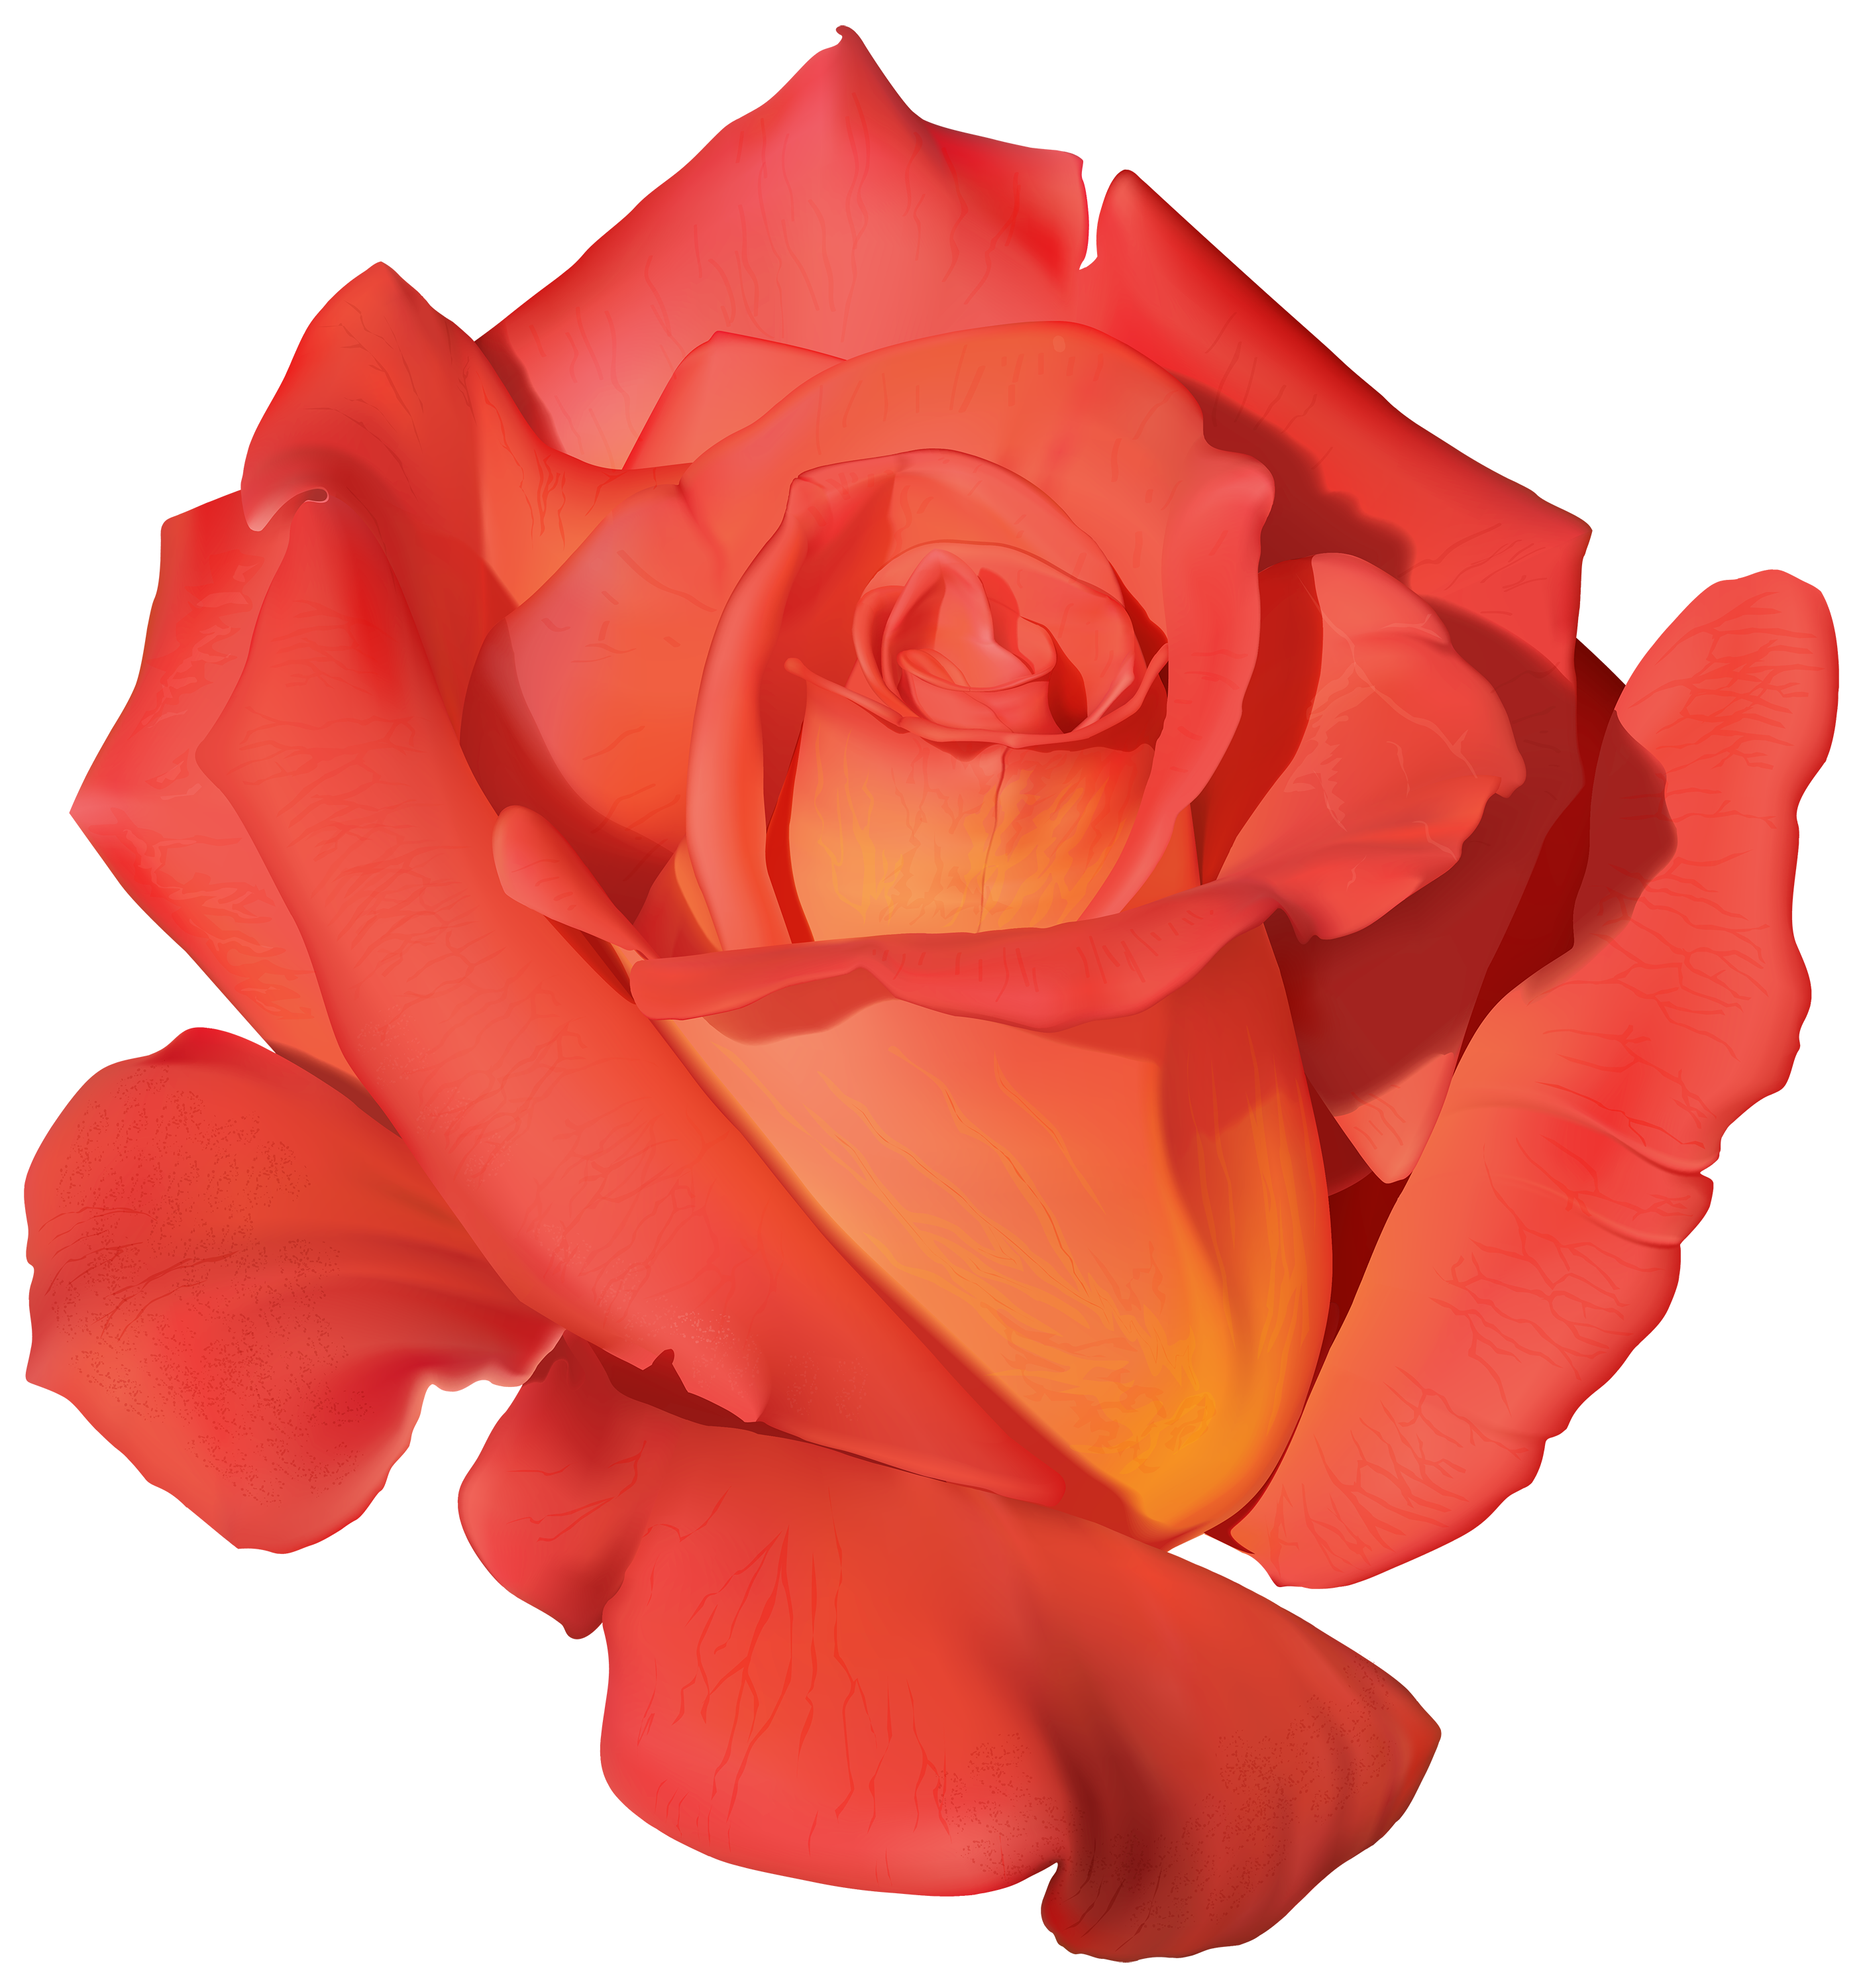 Orange flower png. Rose clipart best web